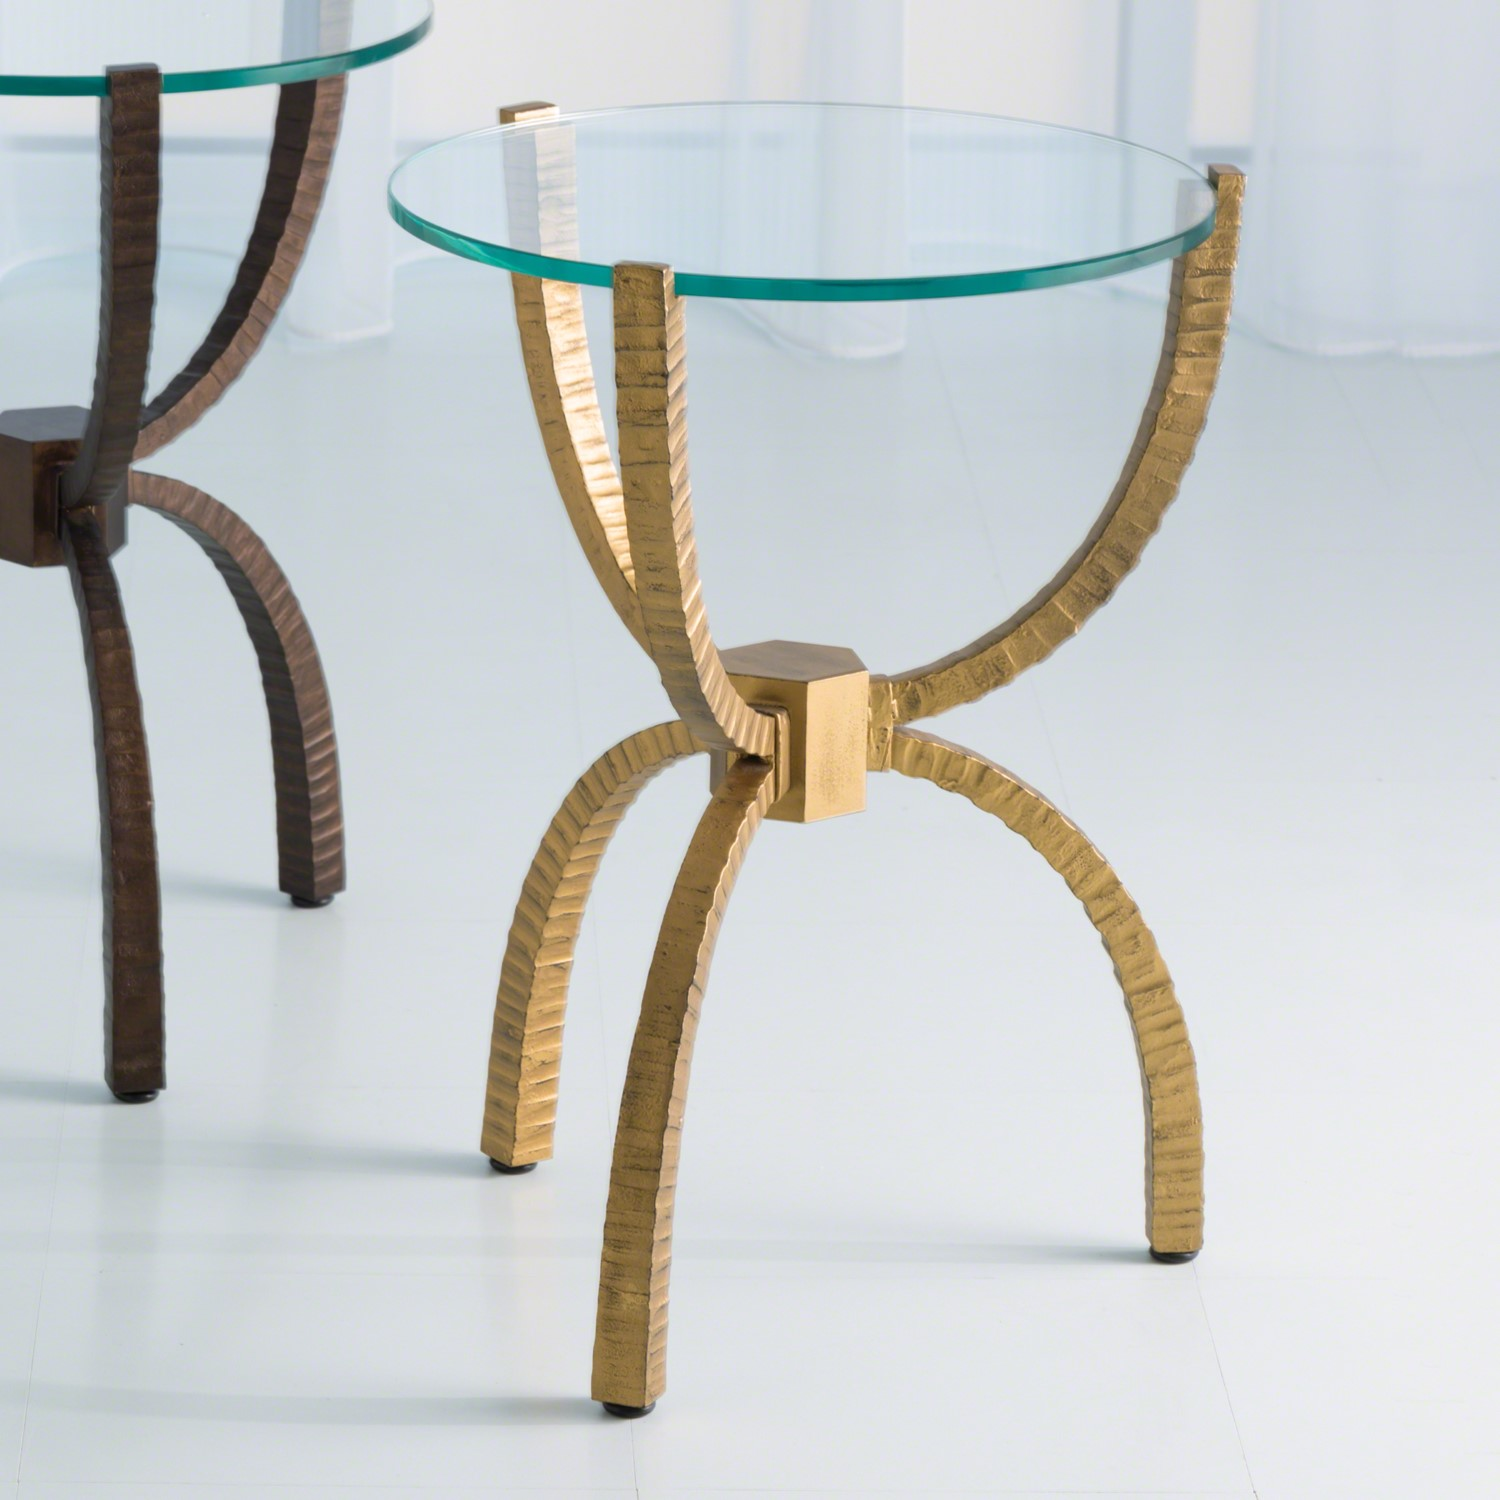 teton accent table gold metal small marble rustic chic end tables black glass set dining and chairs with folding sides chair usb groups counter high shower curtains vintage brass